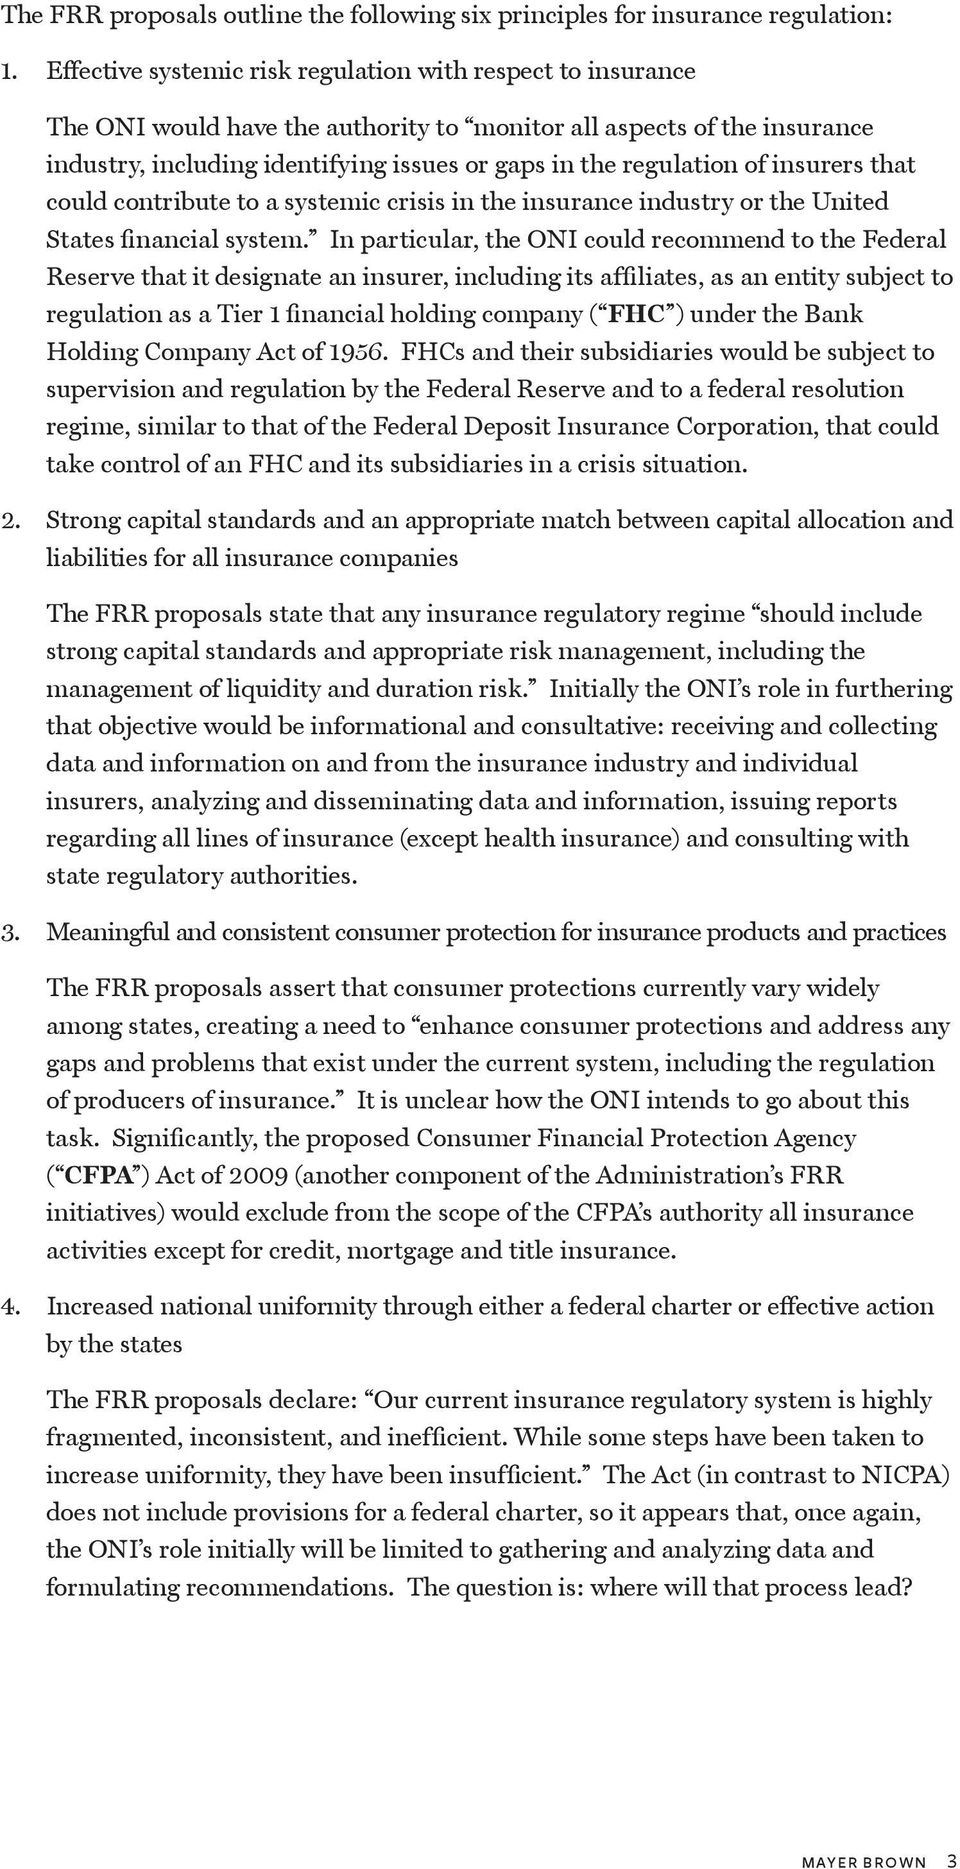 of insurers that could contribute to a systemic crisis in the insurance industry or the United States financial system.